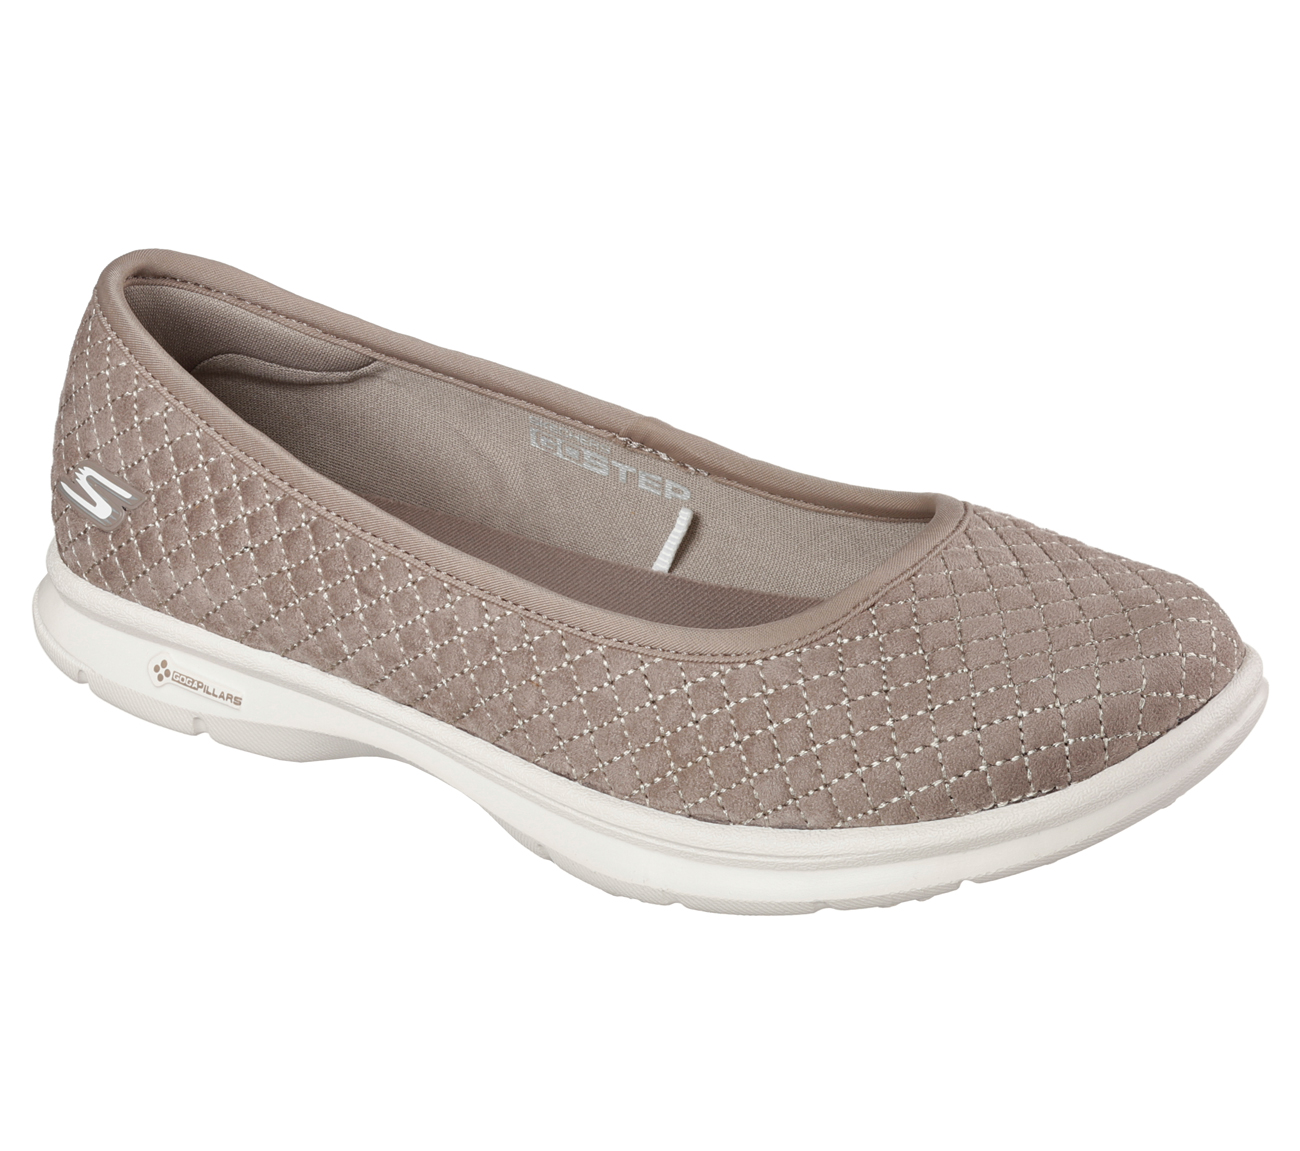 Buy Skechers Skechers Go Step Perky Skechers Performance